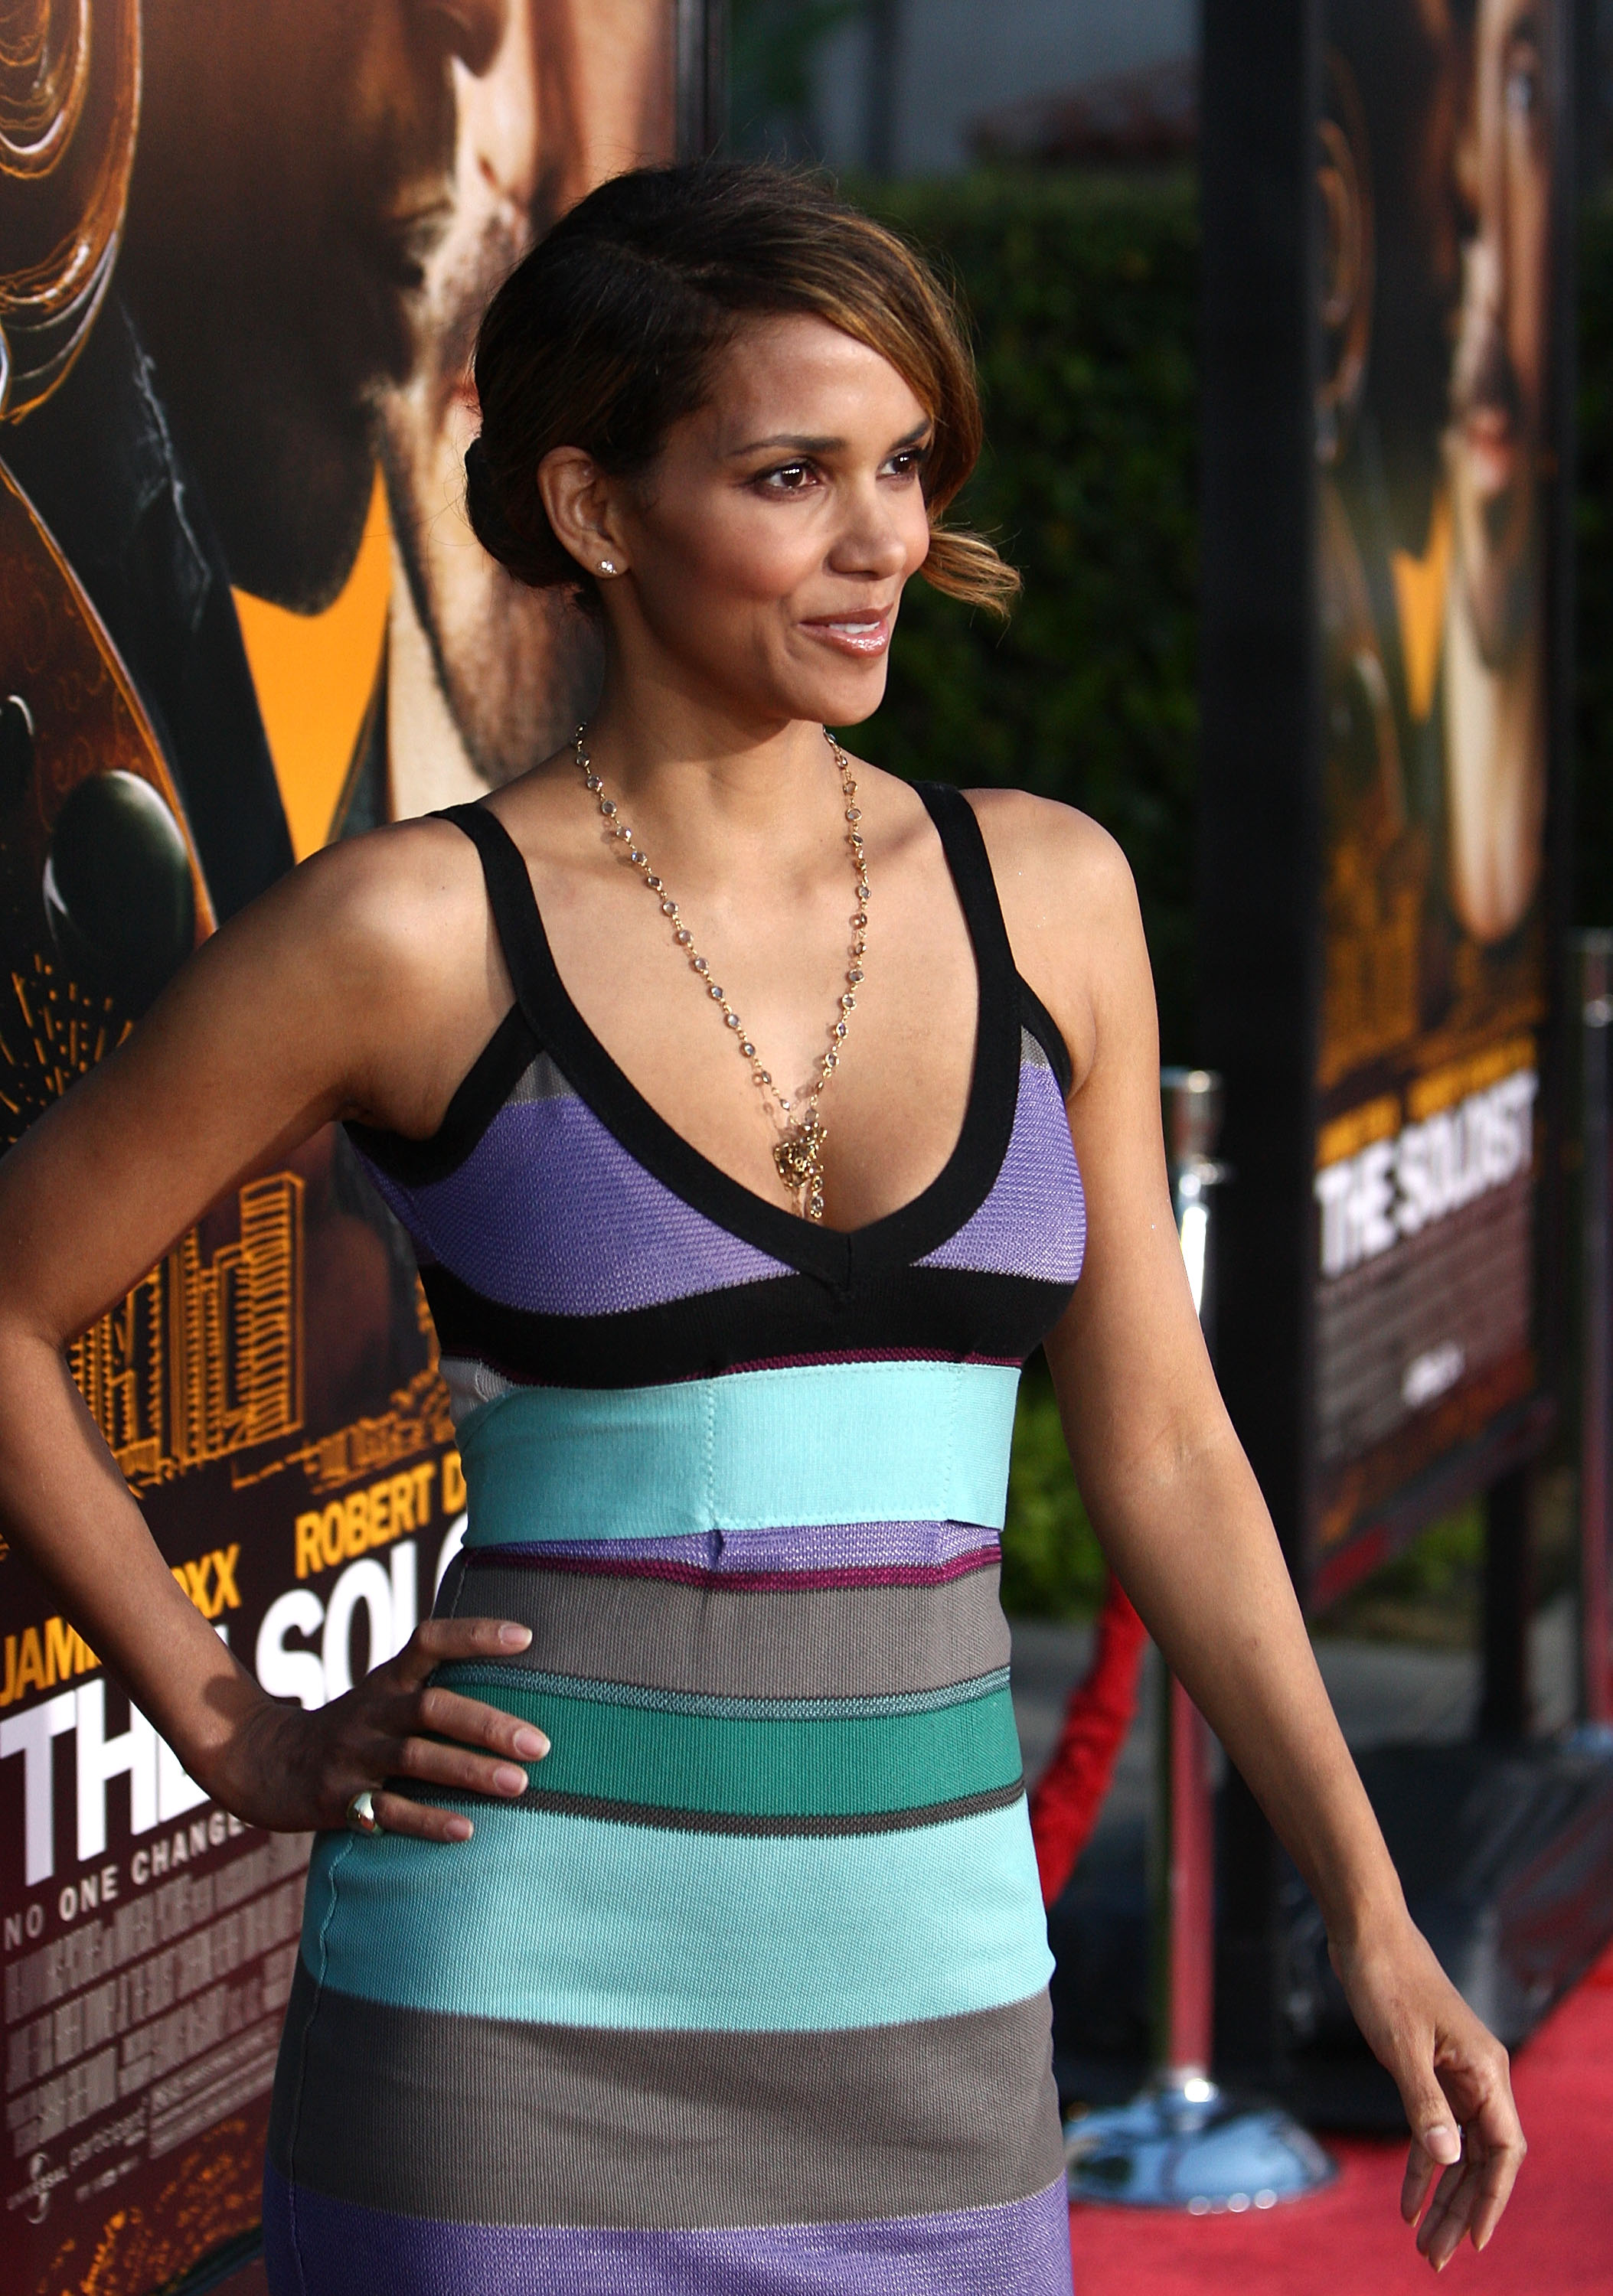 63851_Halle_Berry_The_Soloist_premiere_in_Los_Angeles_09_122_339lo.jpg